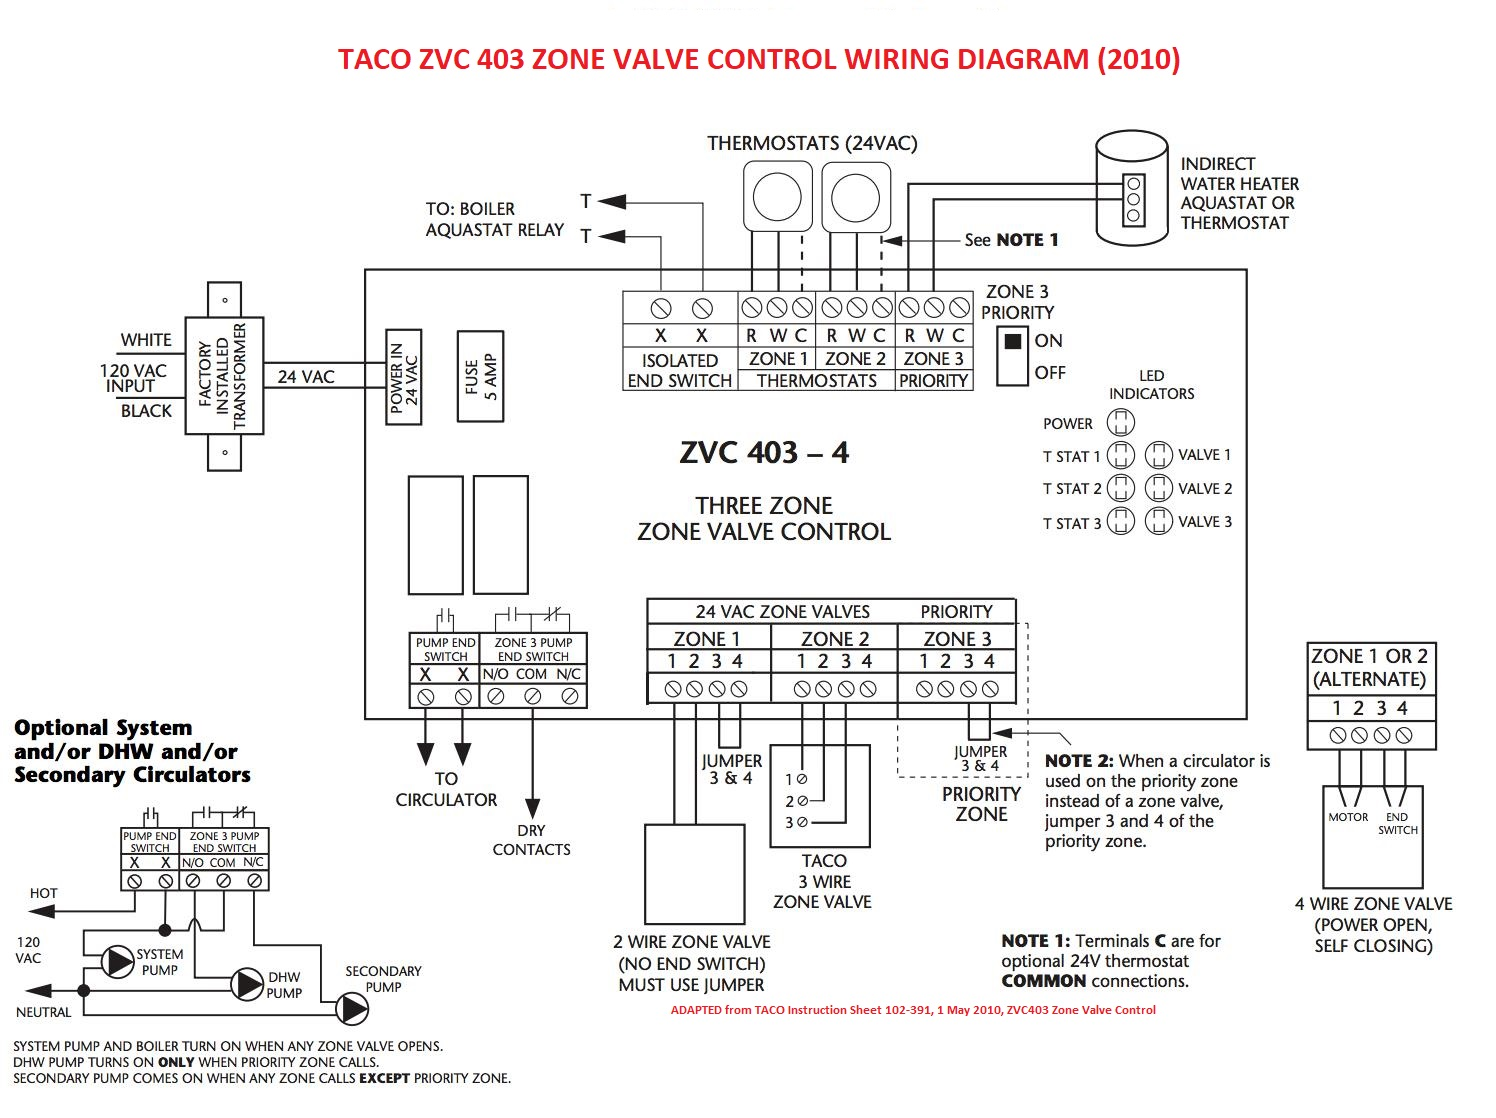 Daisy Chain Wiring Diagram Elecrtic Heater Start Building A Zone Valve Installation Instructions Guide To Heating Rh Inspectapedia Com Cat 5 For Receptacles